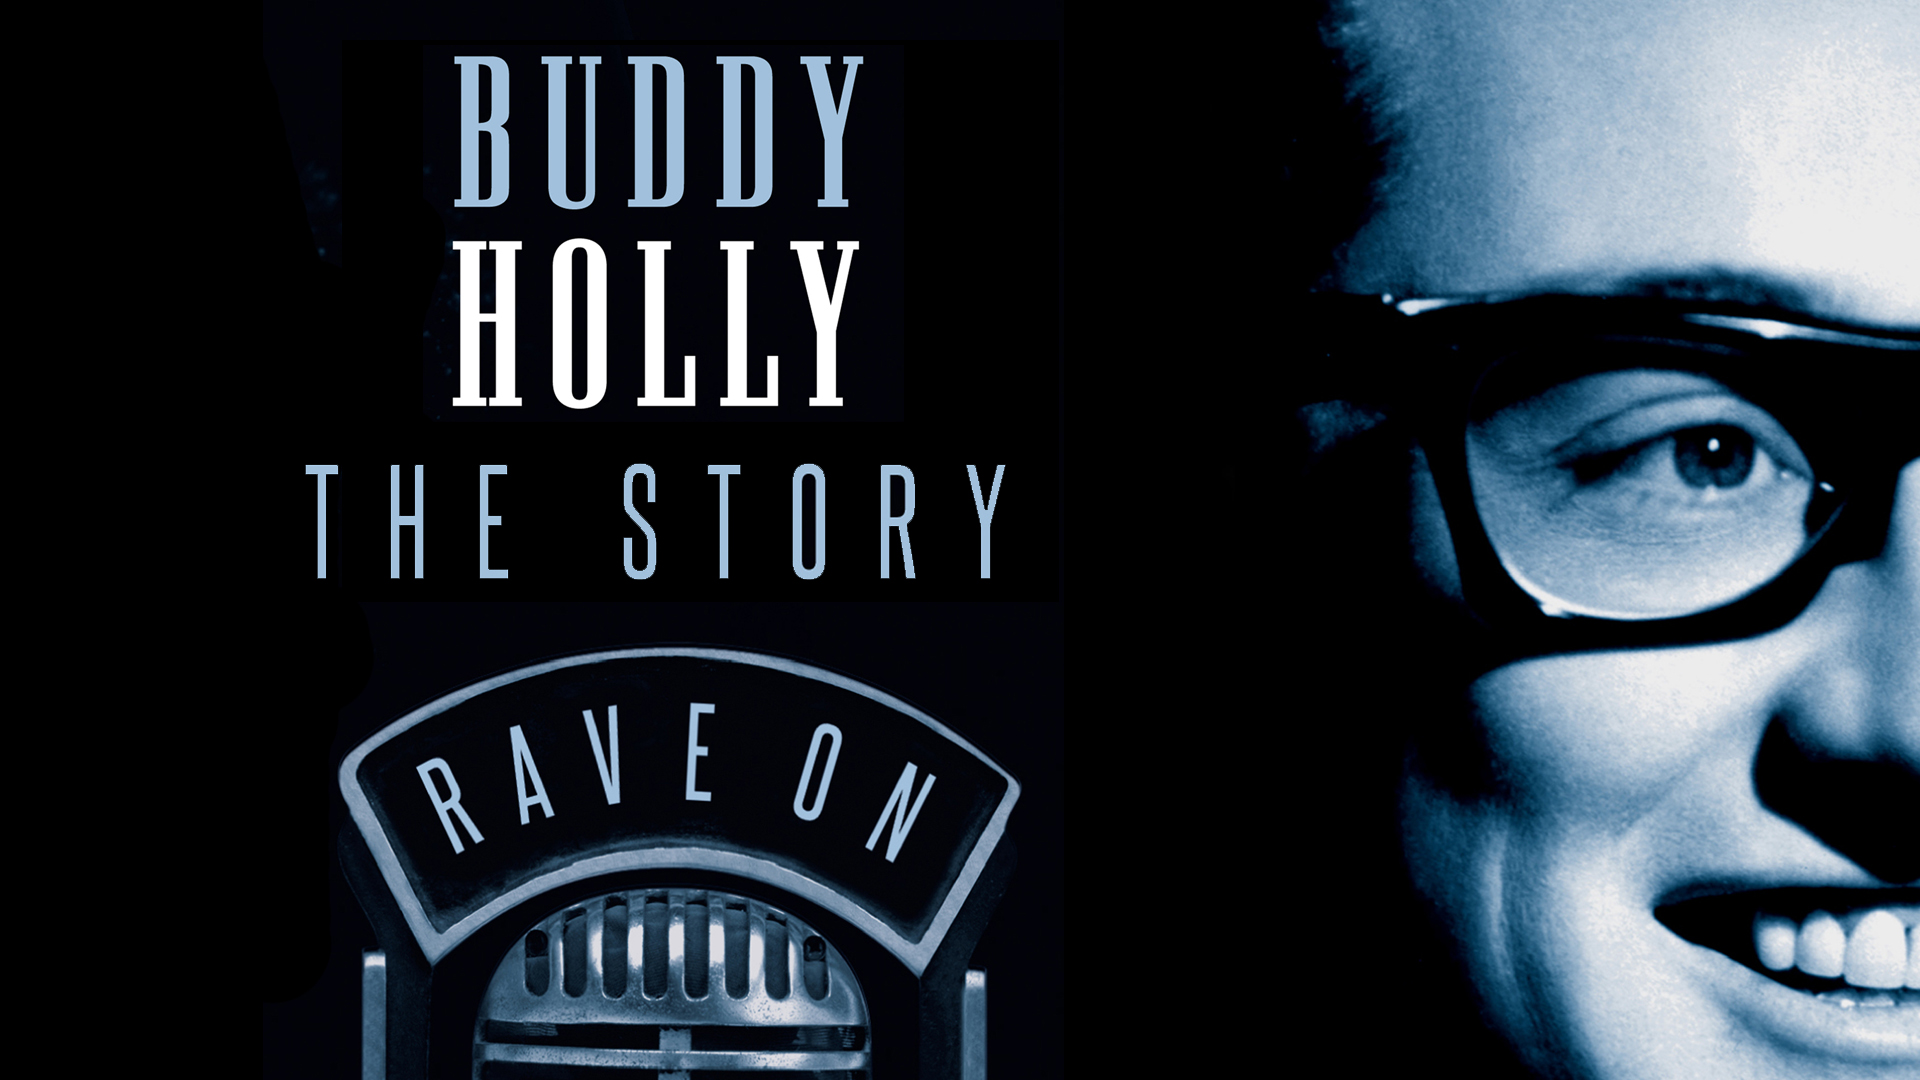 Buddy Holly - Rave On: The Story Of Buddy Holly